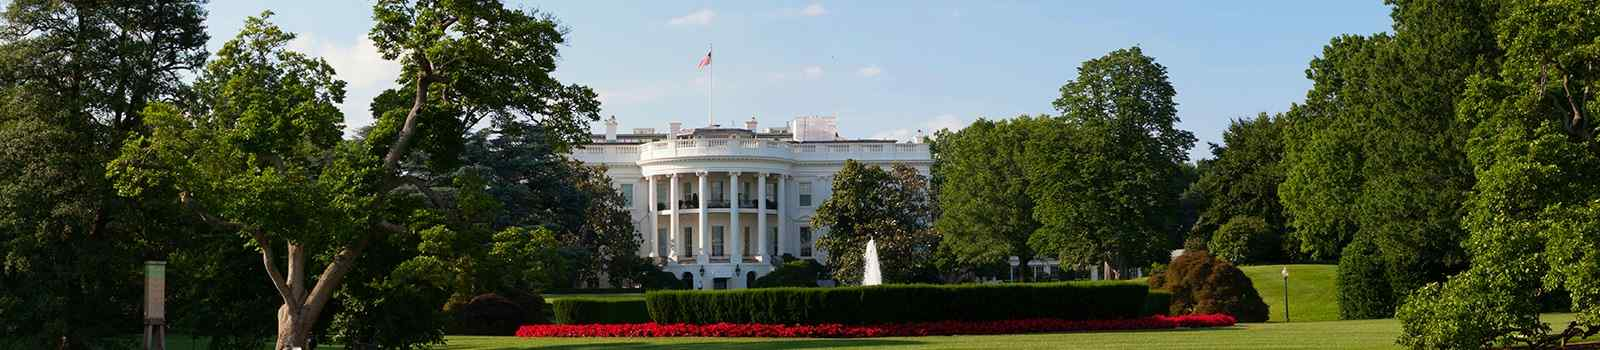 -USA White-House 145421713